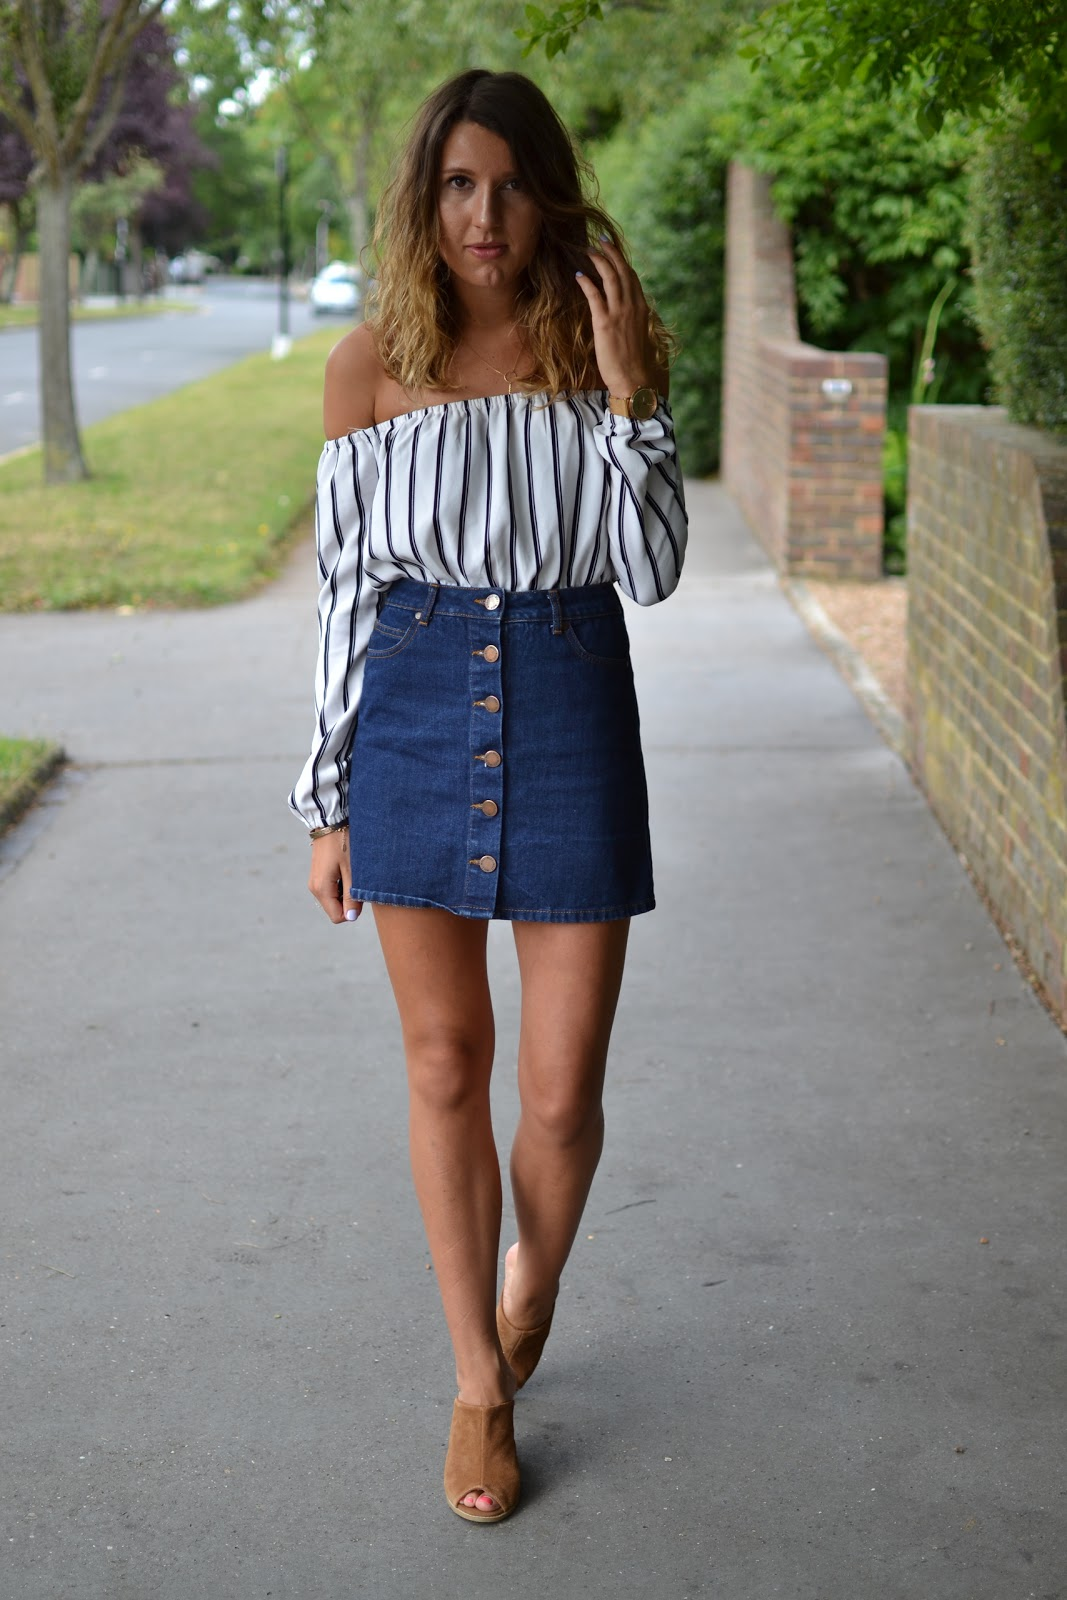 0a8f7896a77 Two of my favourite items from my summer wardrobe combined into one outfit....what's  not to love?! This Missguided bardot playsuit (worn here as a top) was ...